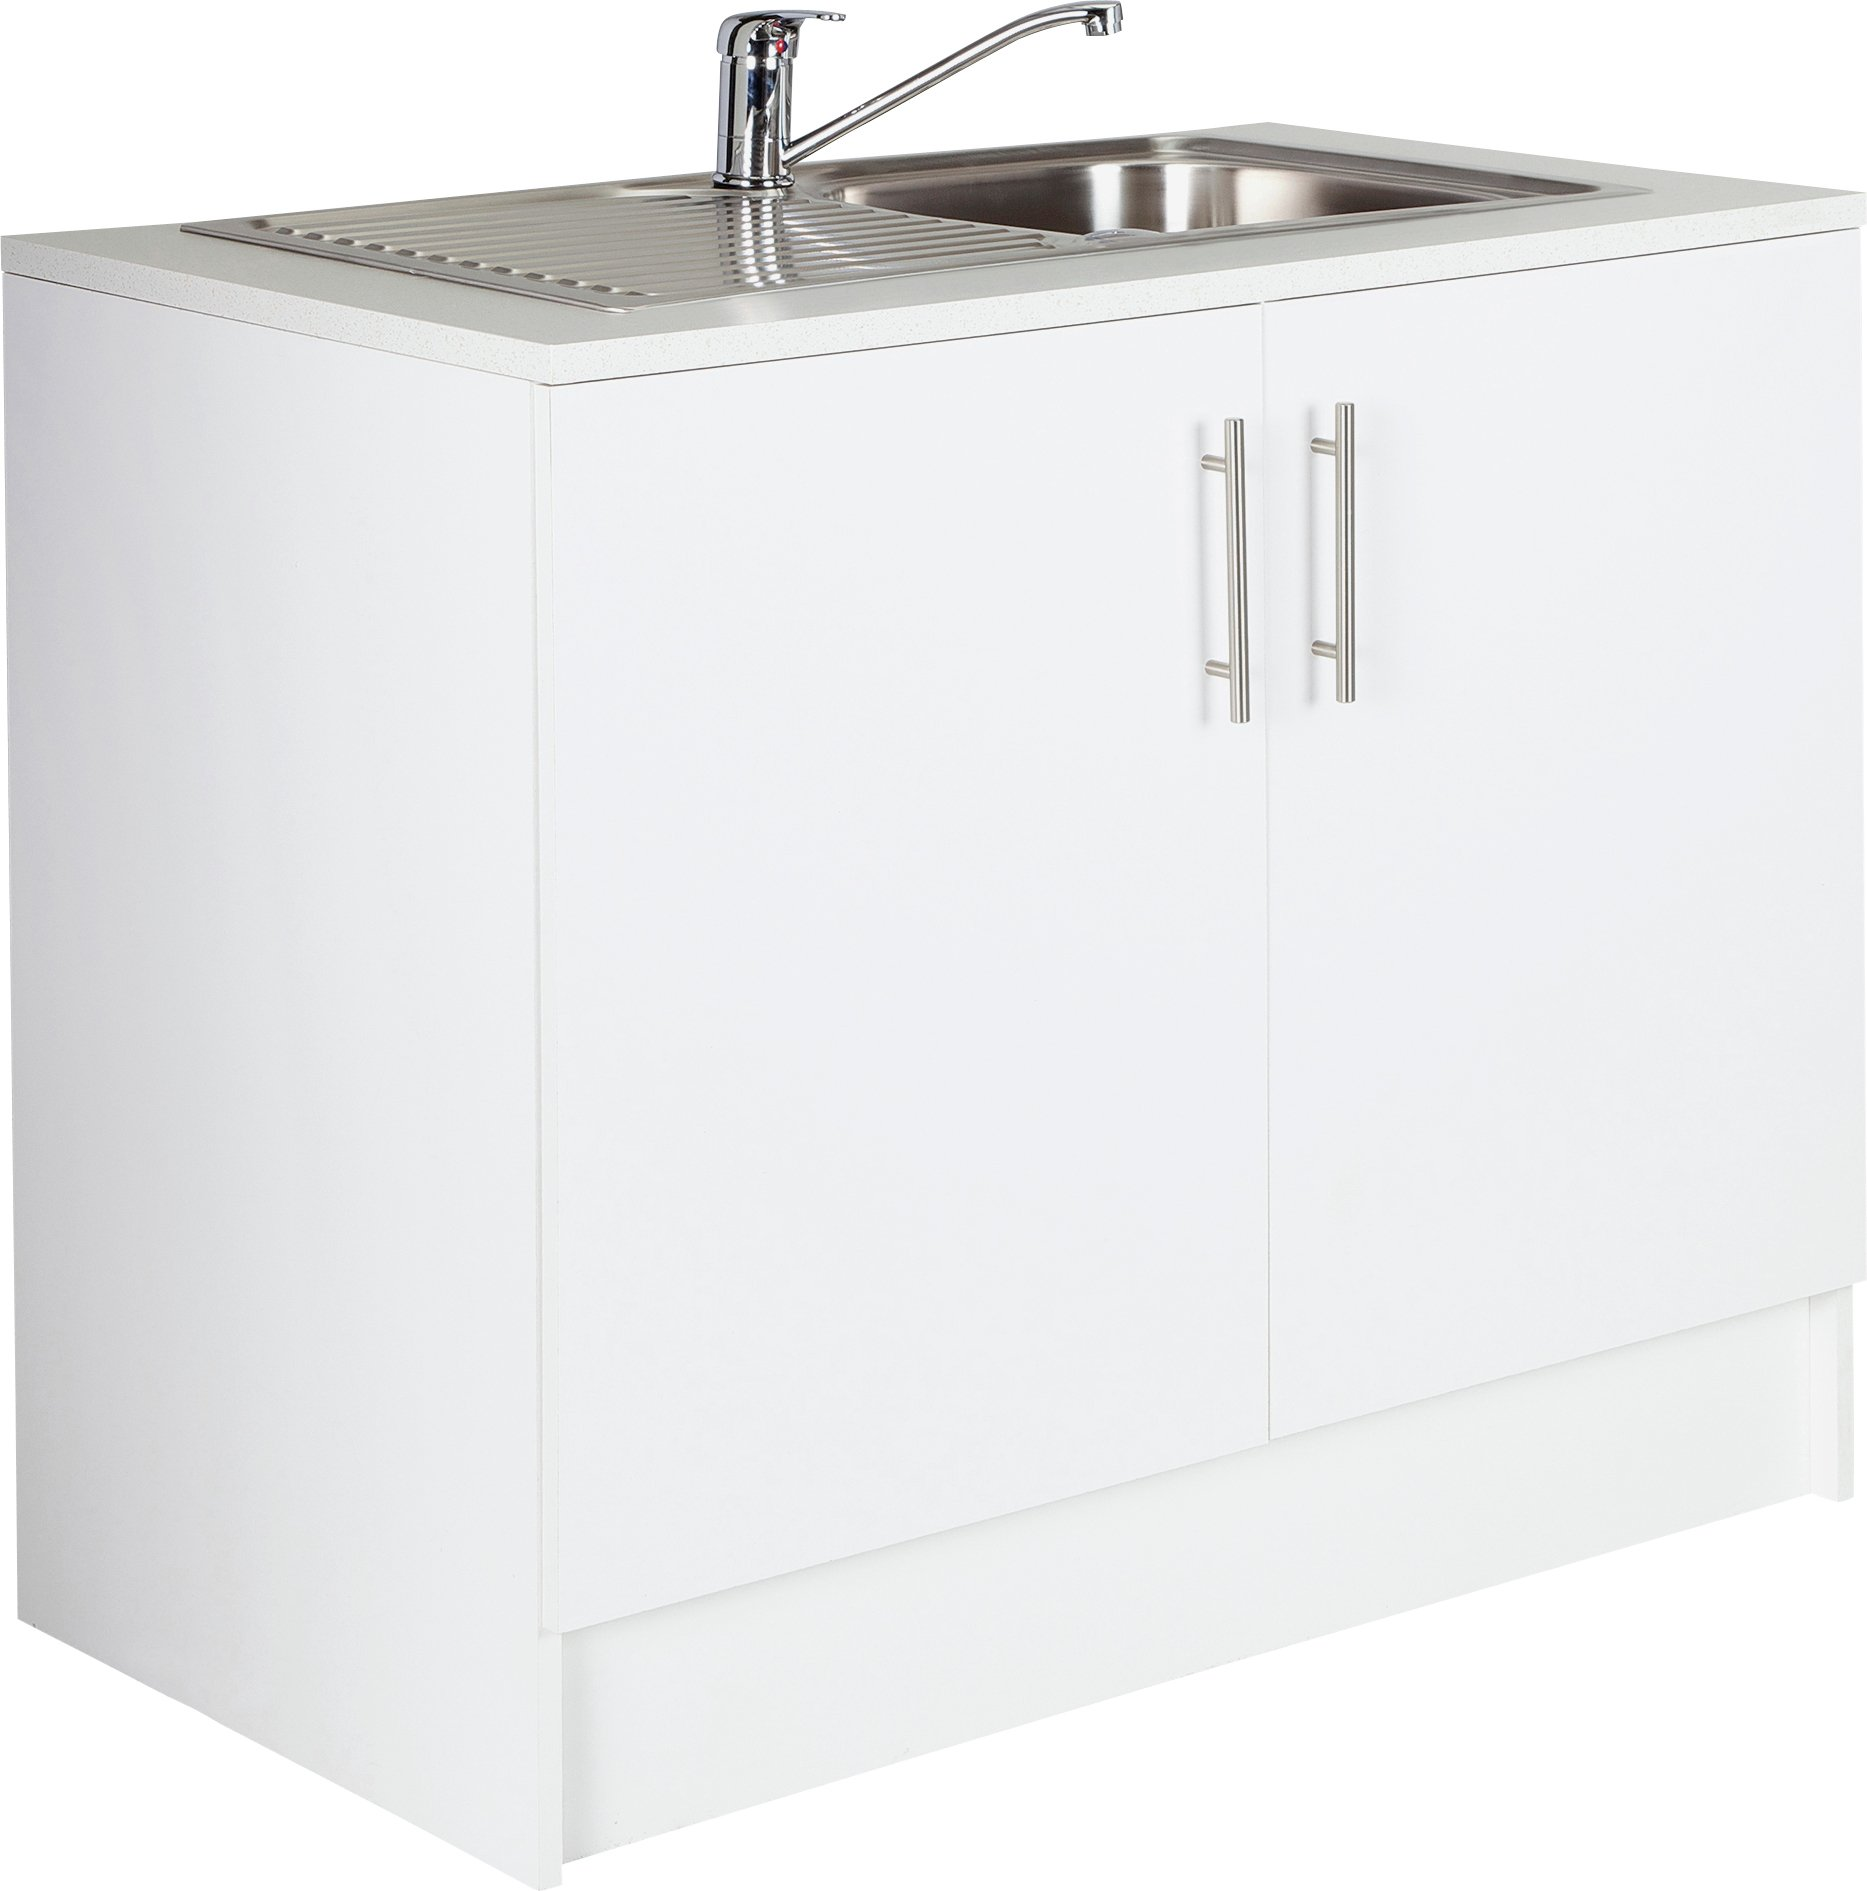 cheap kitchen sink and tap sets marble countertops sinks taps mixer units argos